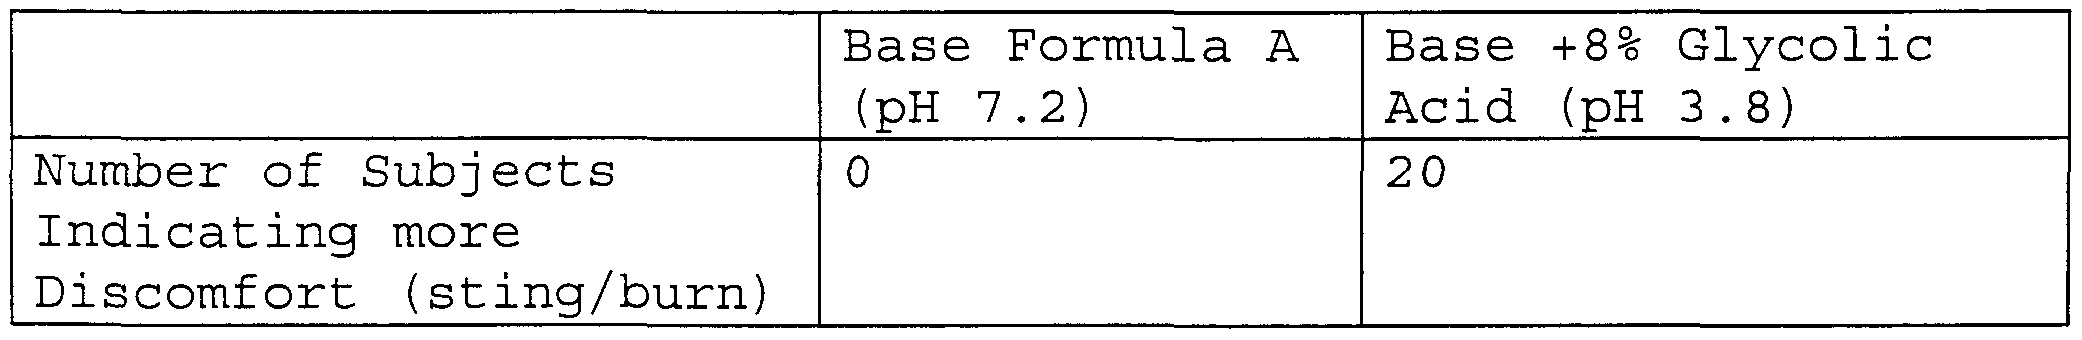 WO2001013876A1 - Skin cosmetic compositions for reducing skin